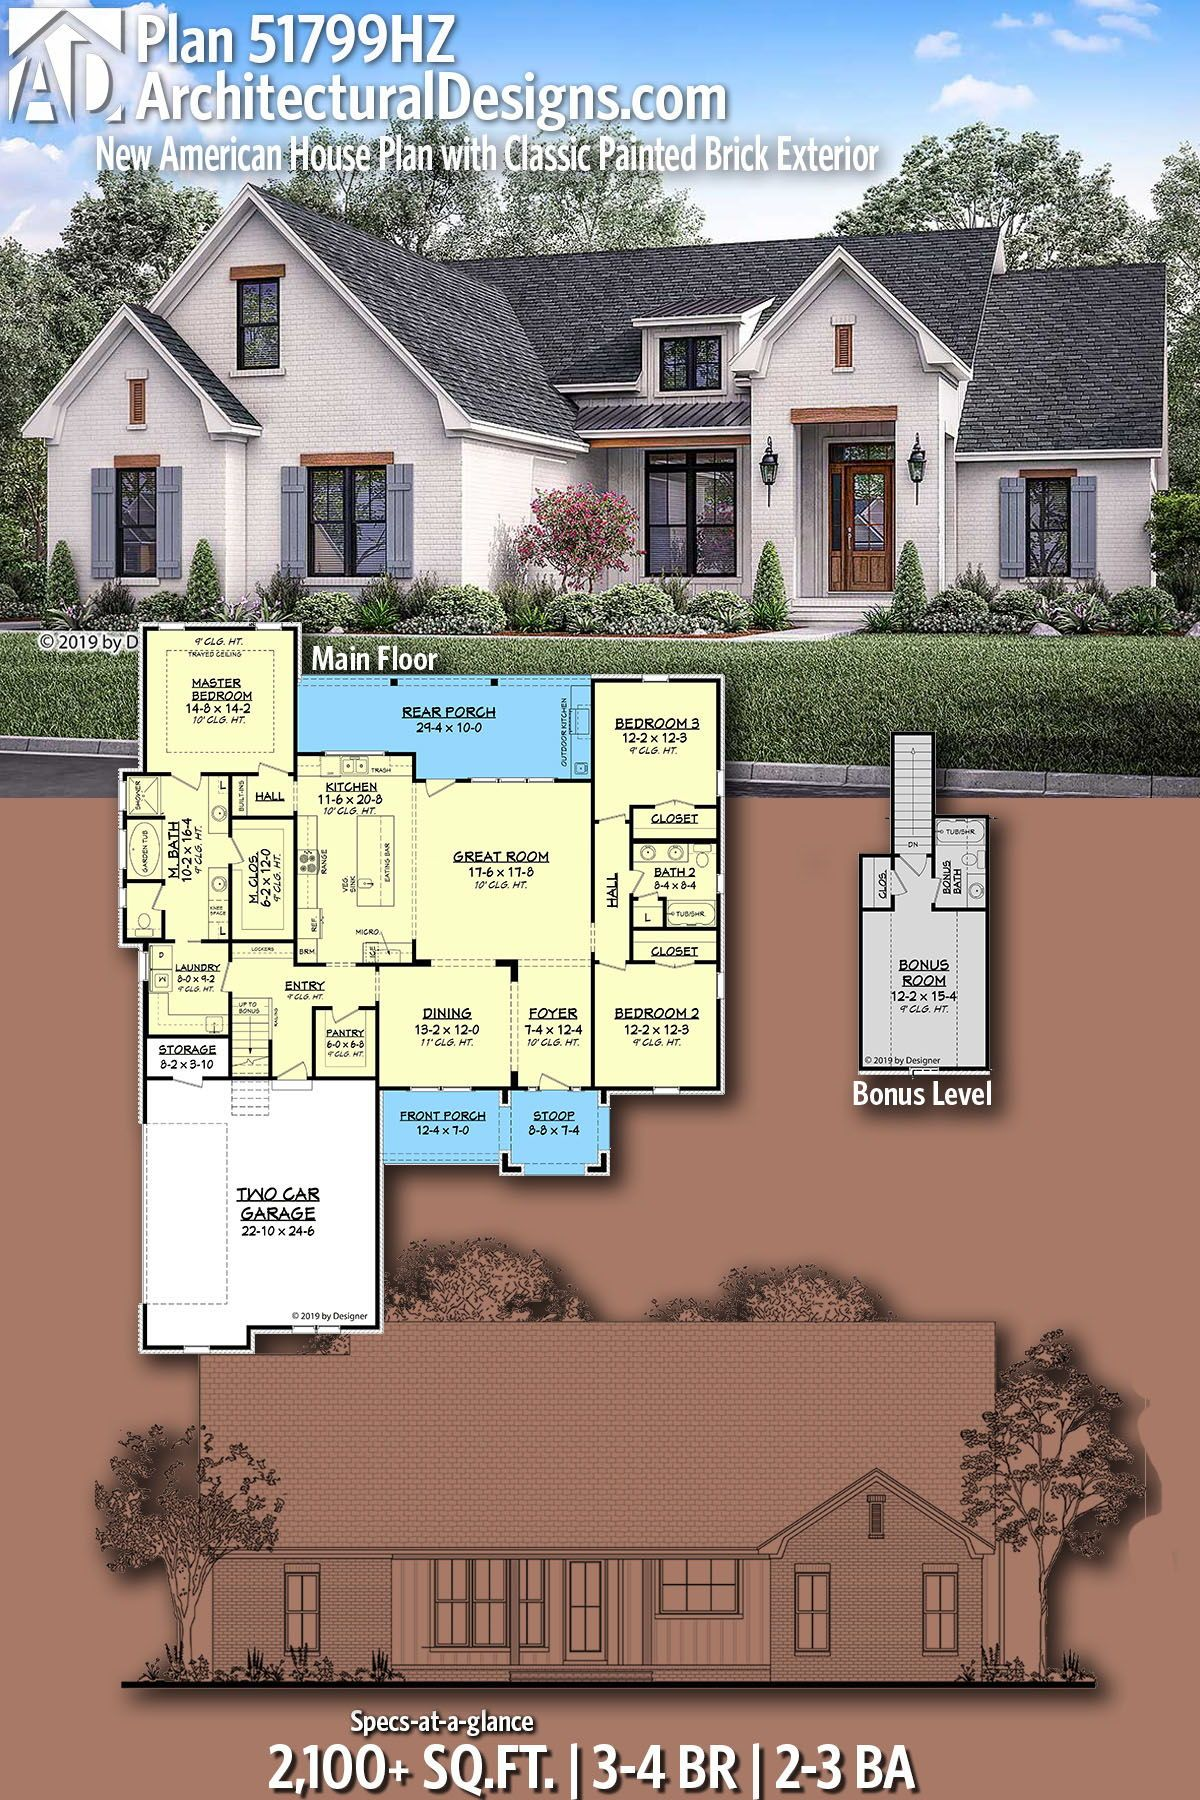 Plan 51799hz New American House Plan With Classic Painted Brick Exterior American Houses Exterior Brick House Plans